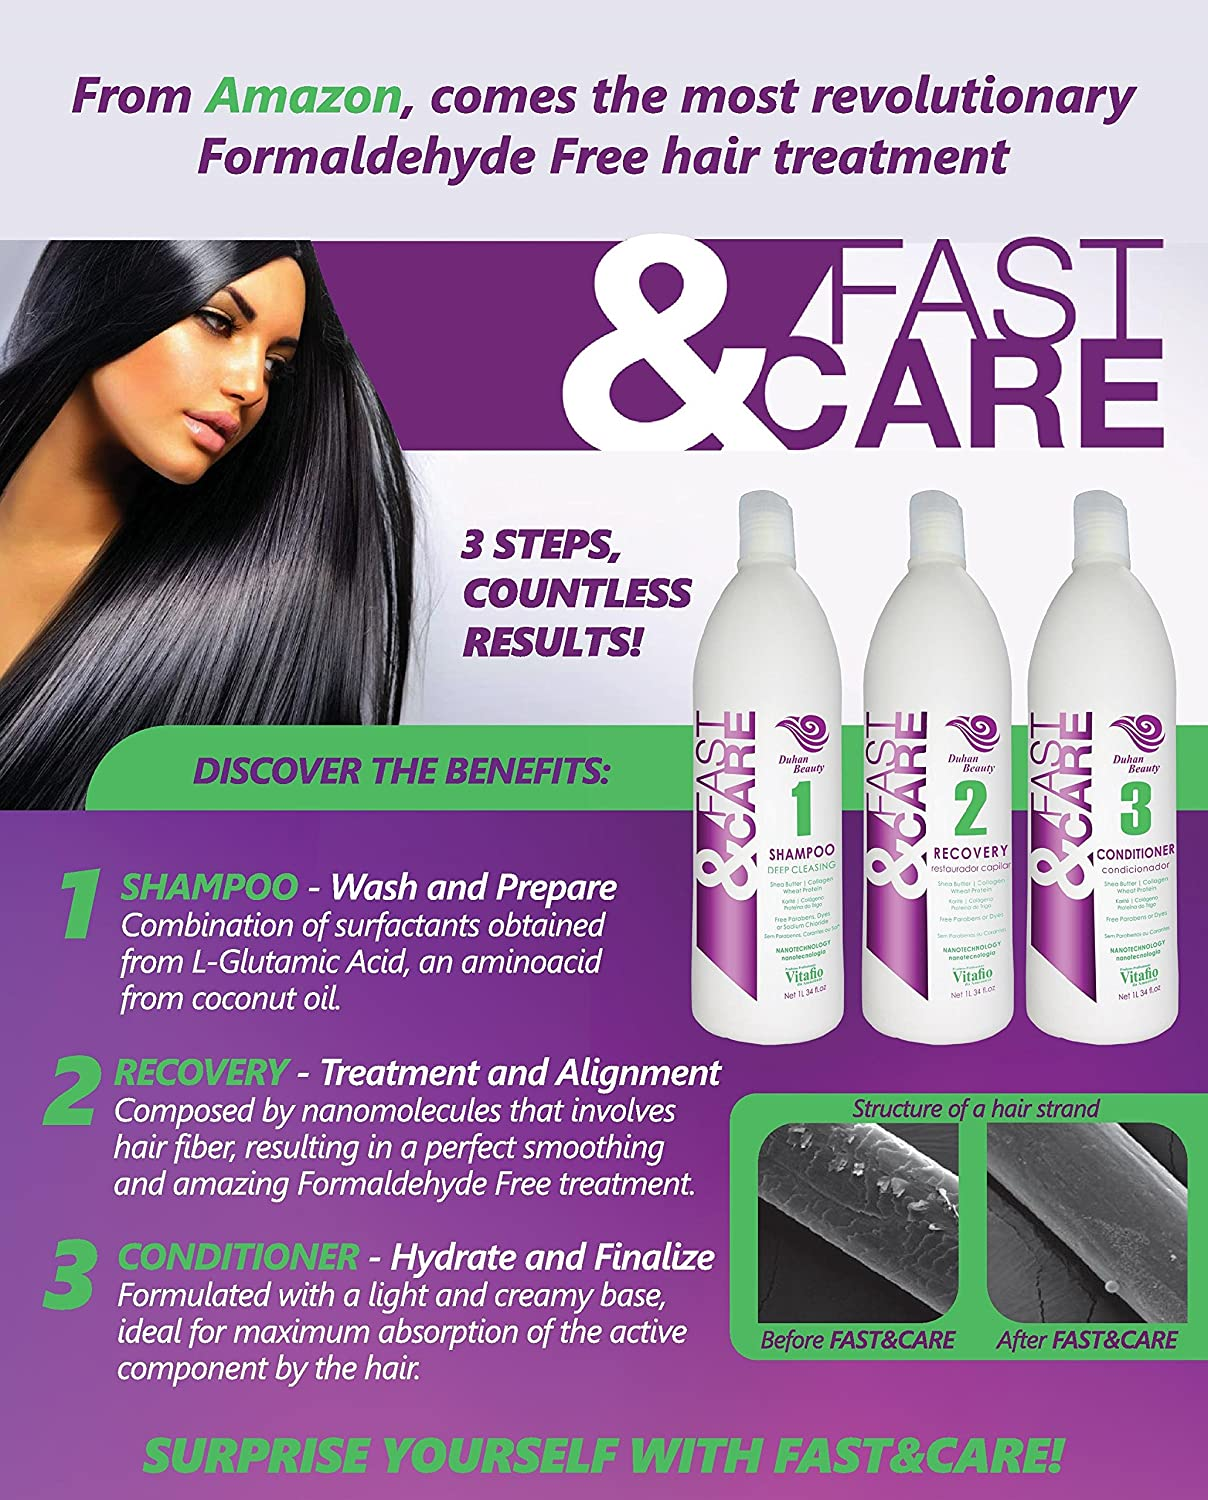 Amazon.com : Fast & Care - Brazilian Keratin Hair Treatment Kit - Formaldehyde Free - 3 Steps (Shampoo, Recovery, Conditioner) Professional Use - SEM FORMOL ...